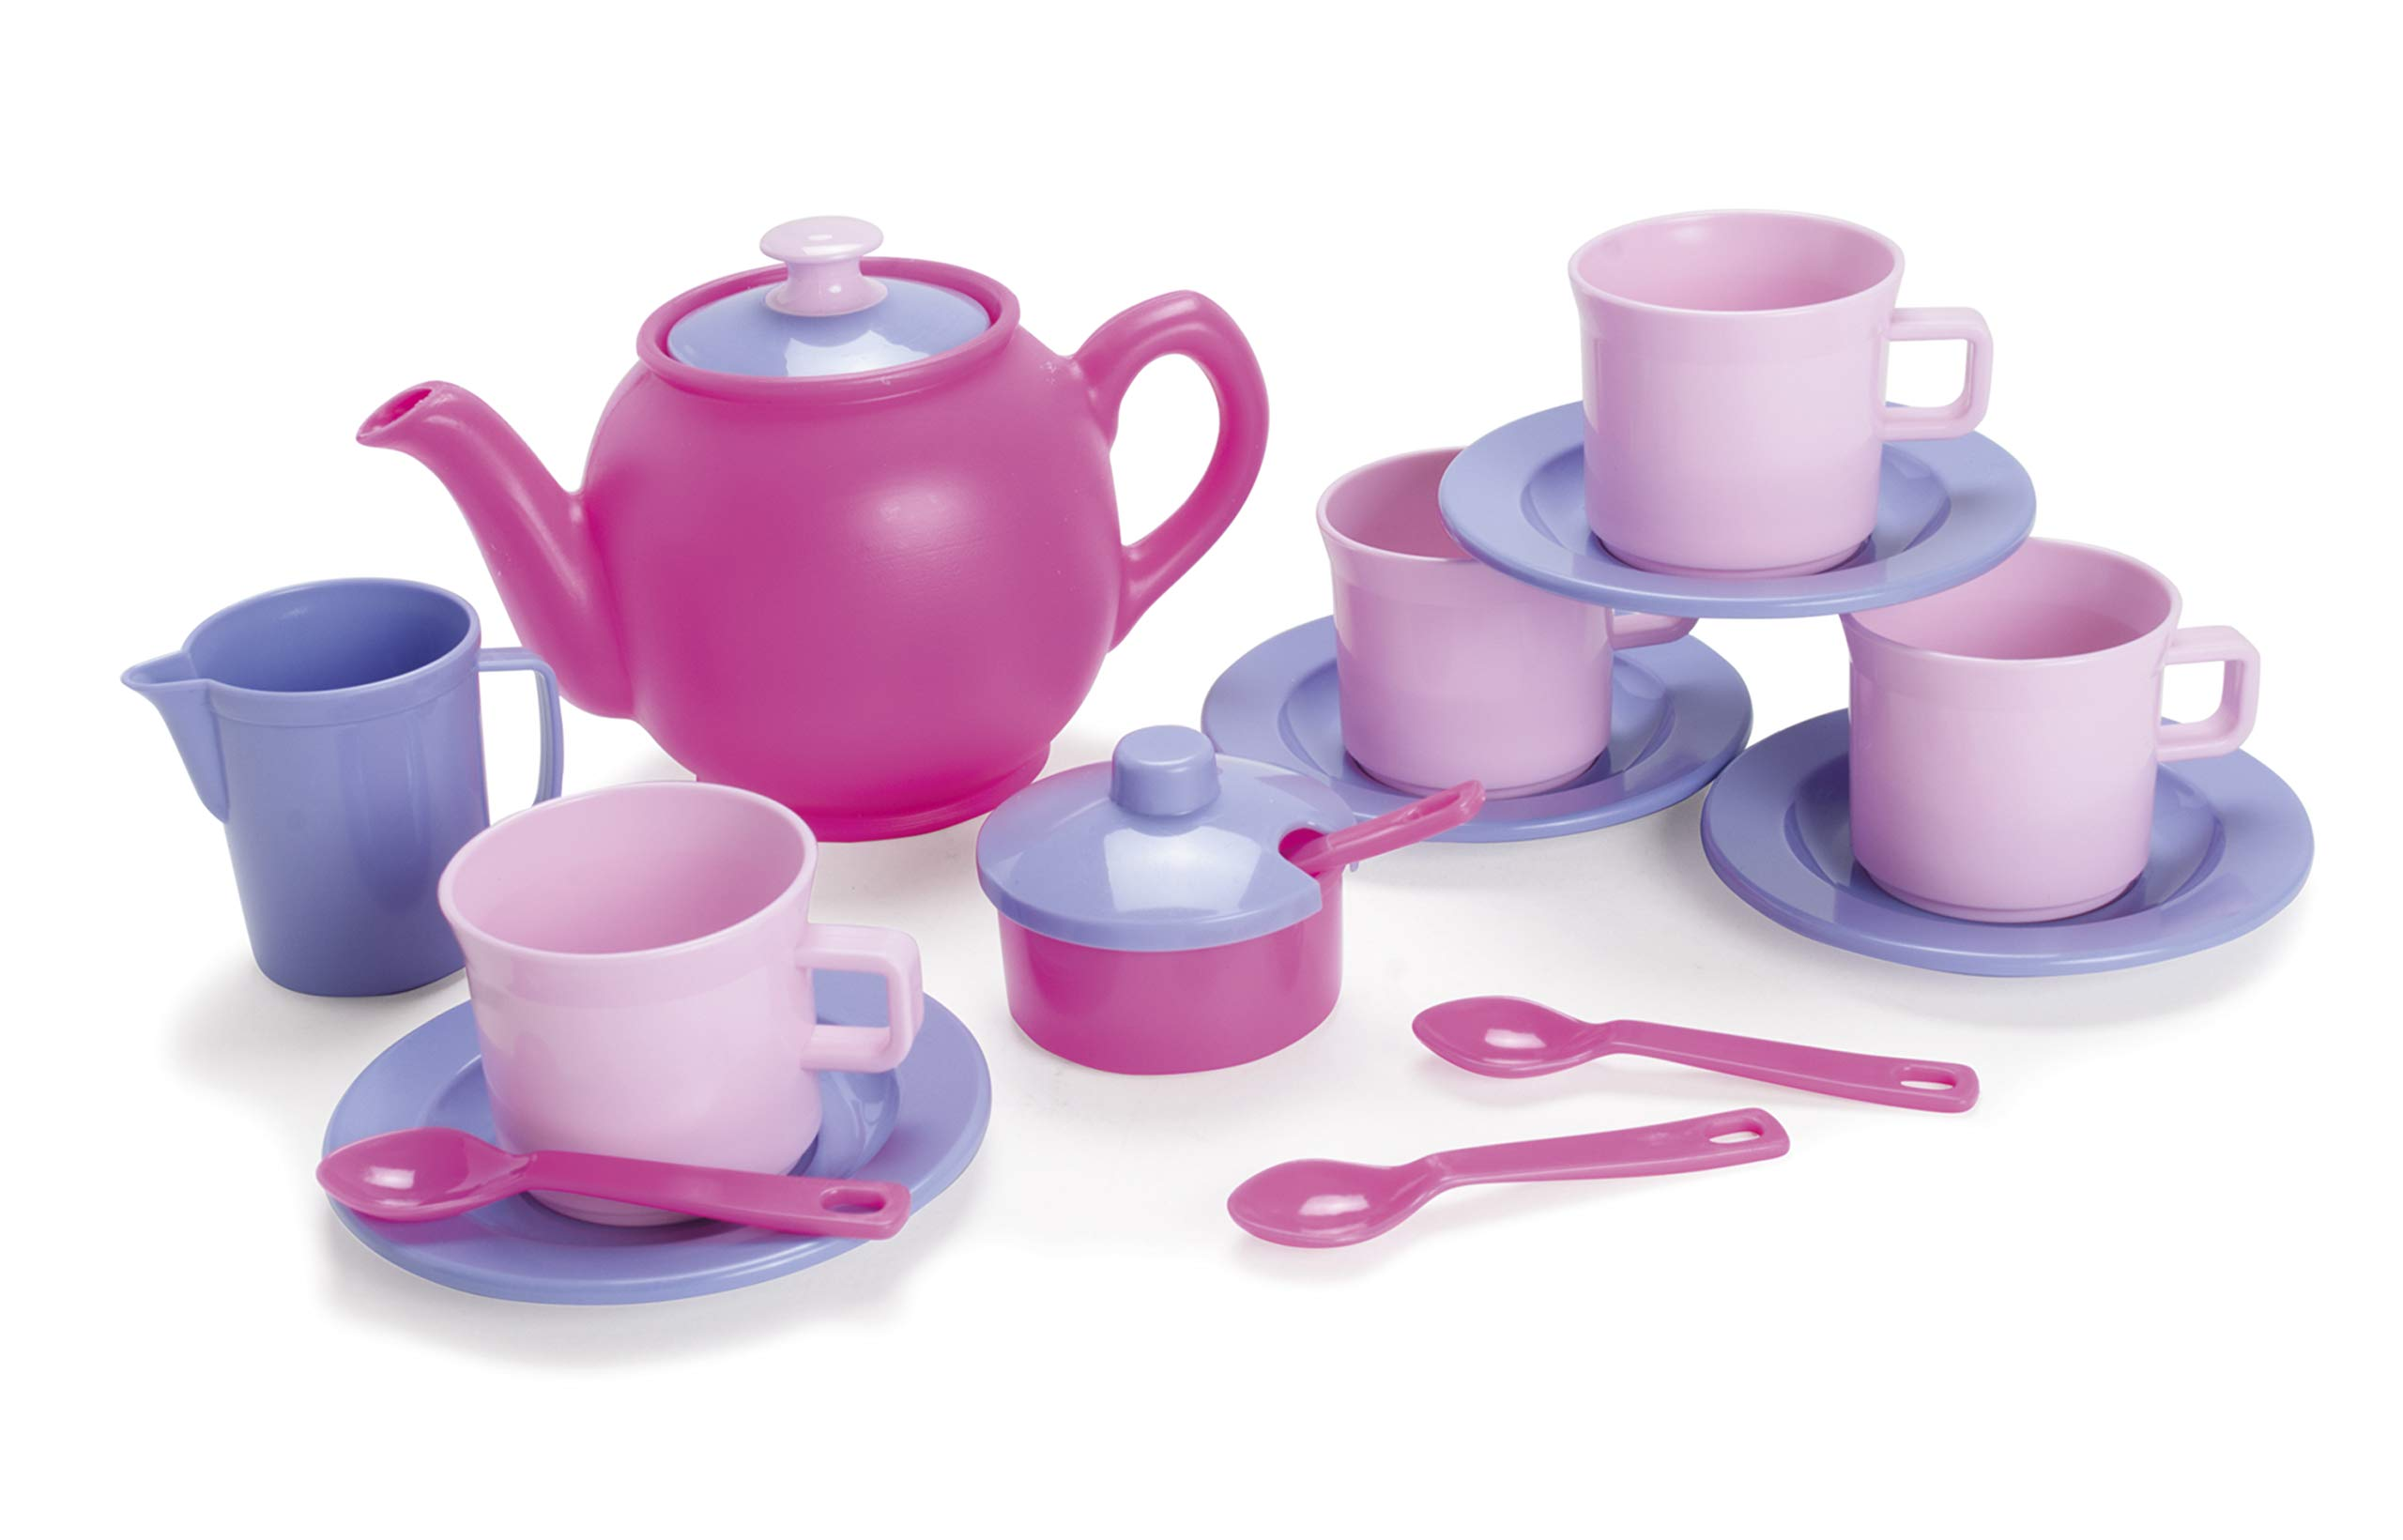 American Educational Products DT-4398 Tea Set Activity Set, 7.025'' Height, 5.46'' Wide, 7.41'' Length